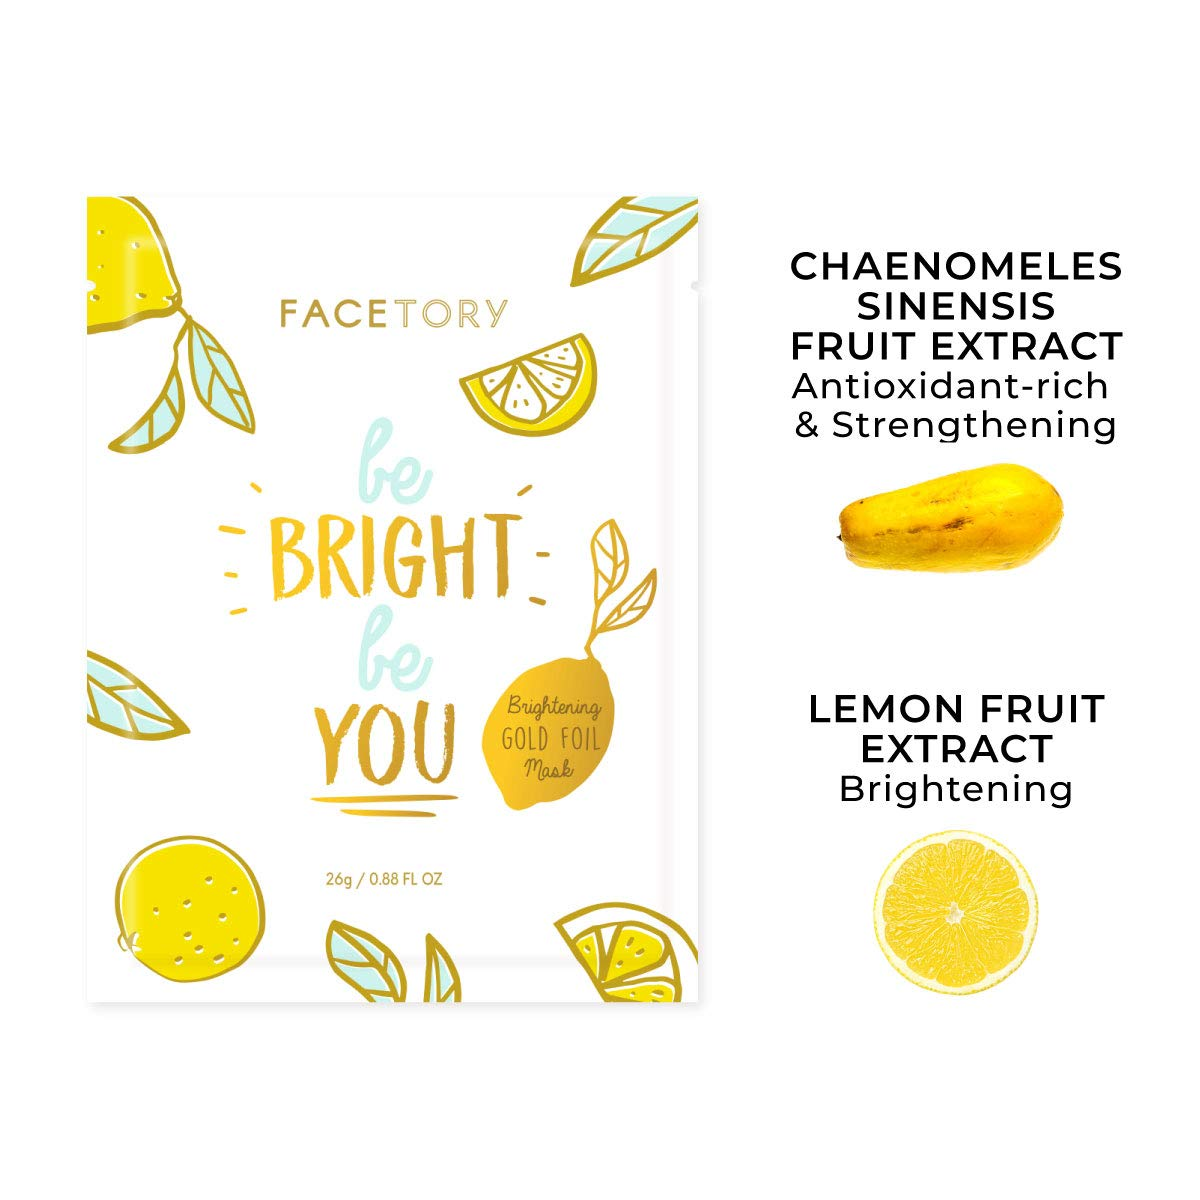 FaceTory Best of Seven Facial Masks Collection - Hydrate, Brighten, Soothe, Revitalize, Nourish, Purify Skin - For All Skin Types (Pack of 7)